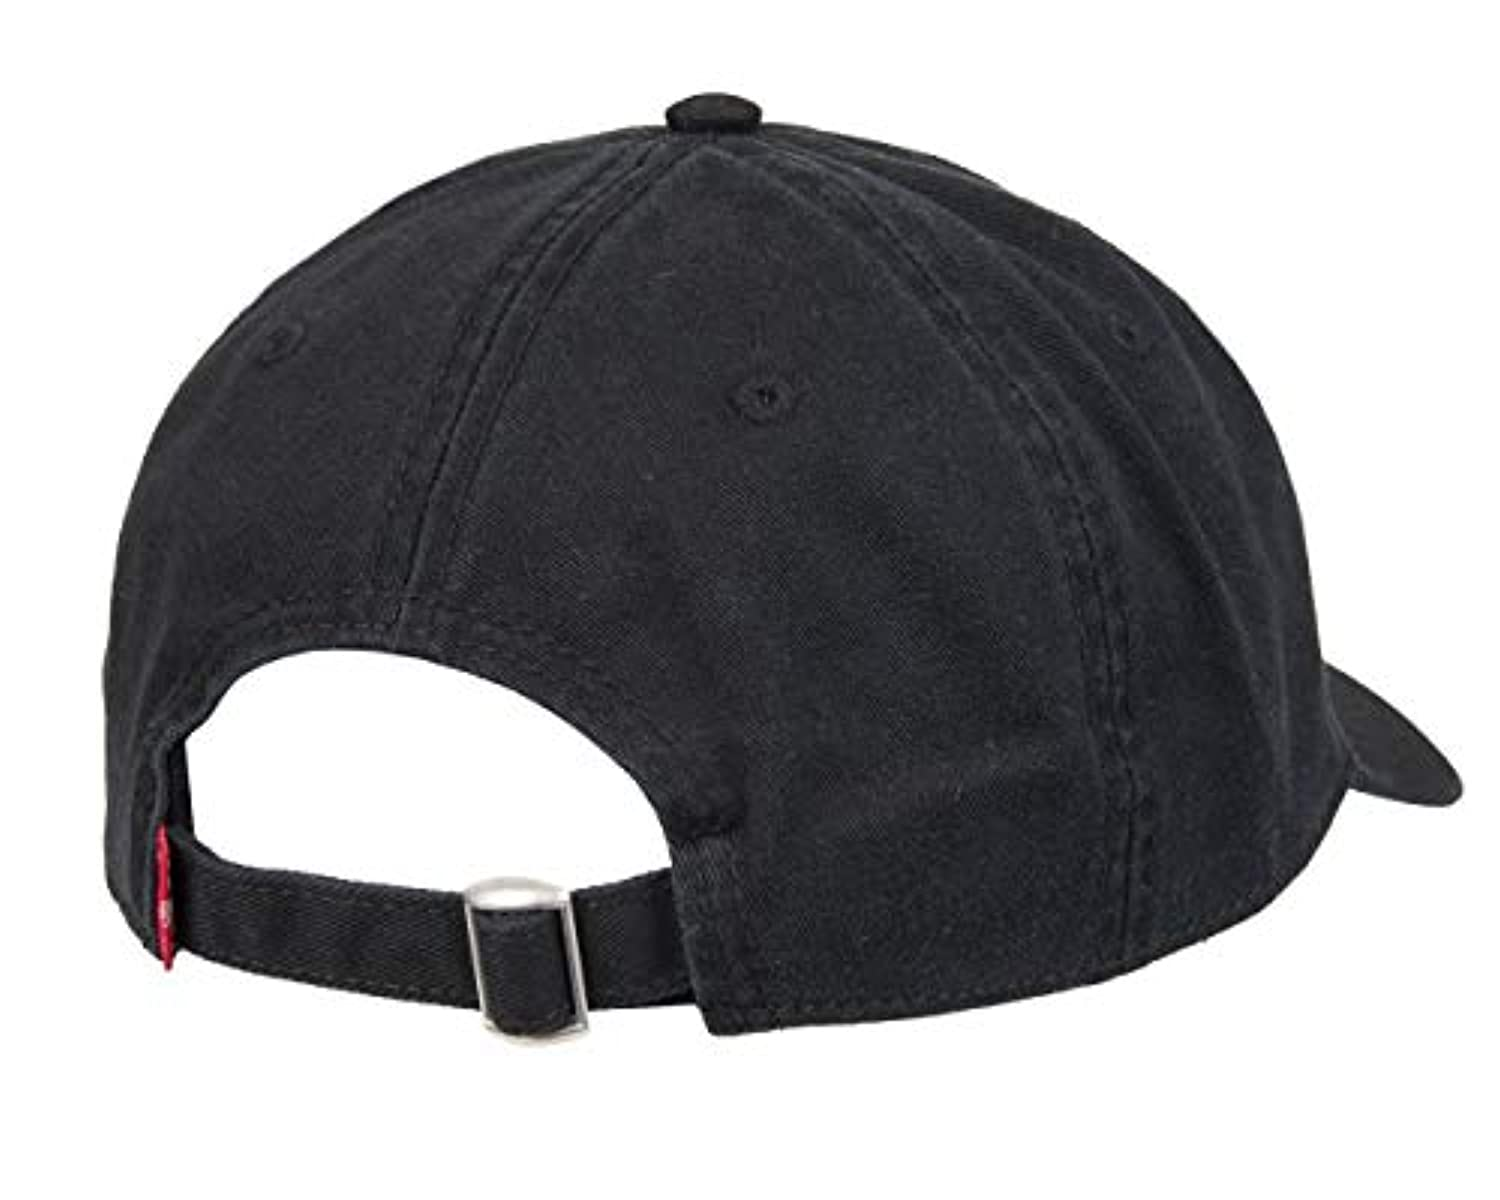 Classier: Buy Levi's Levi's Men's Classic Baseball Hat with Logo